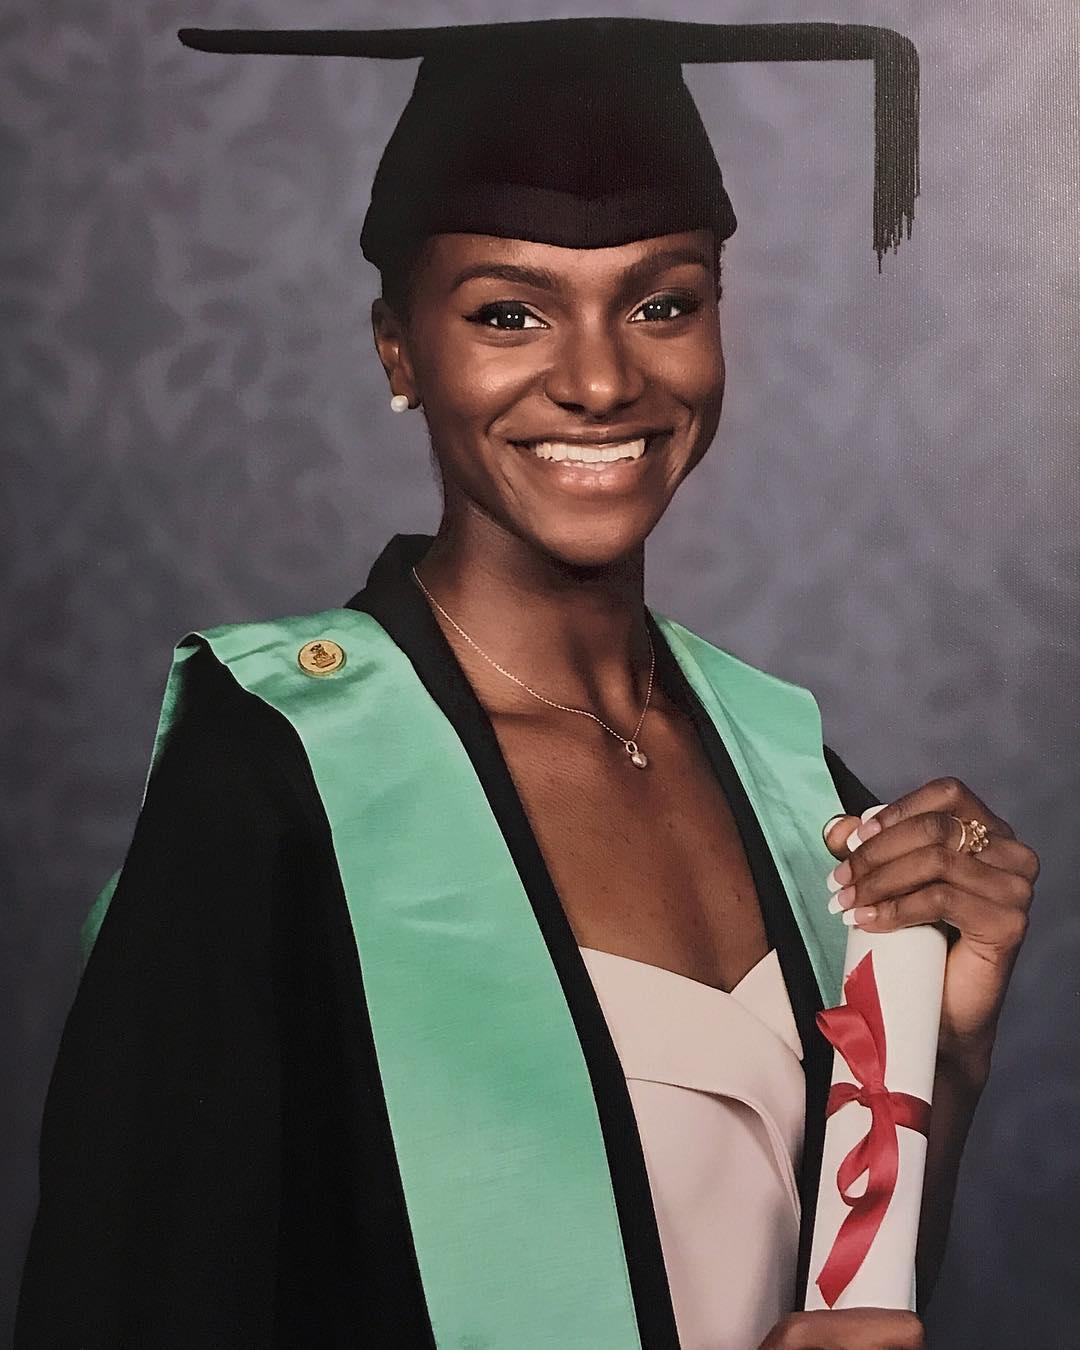 Londoner Asher-Smith graduated from King's College London in 2017 with a degree in History